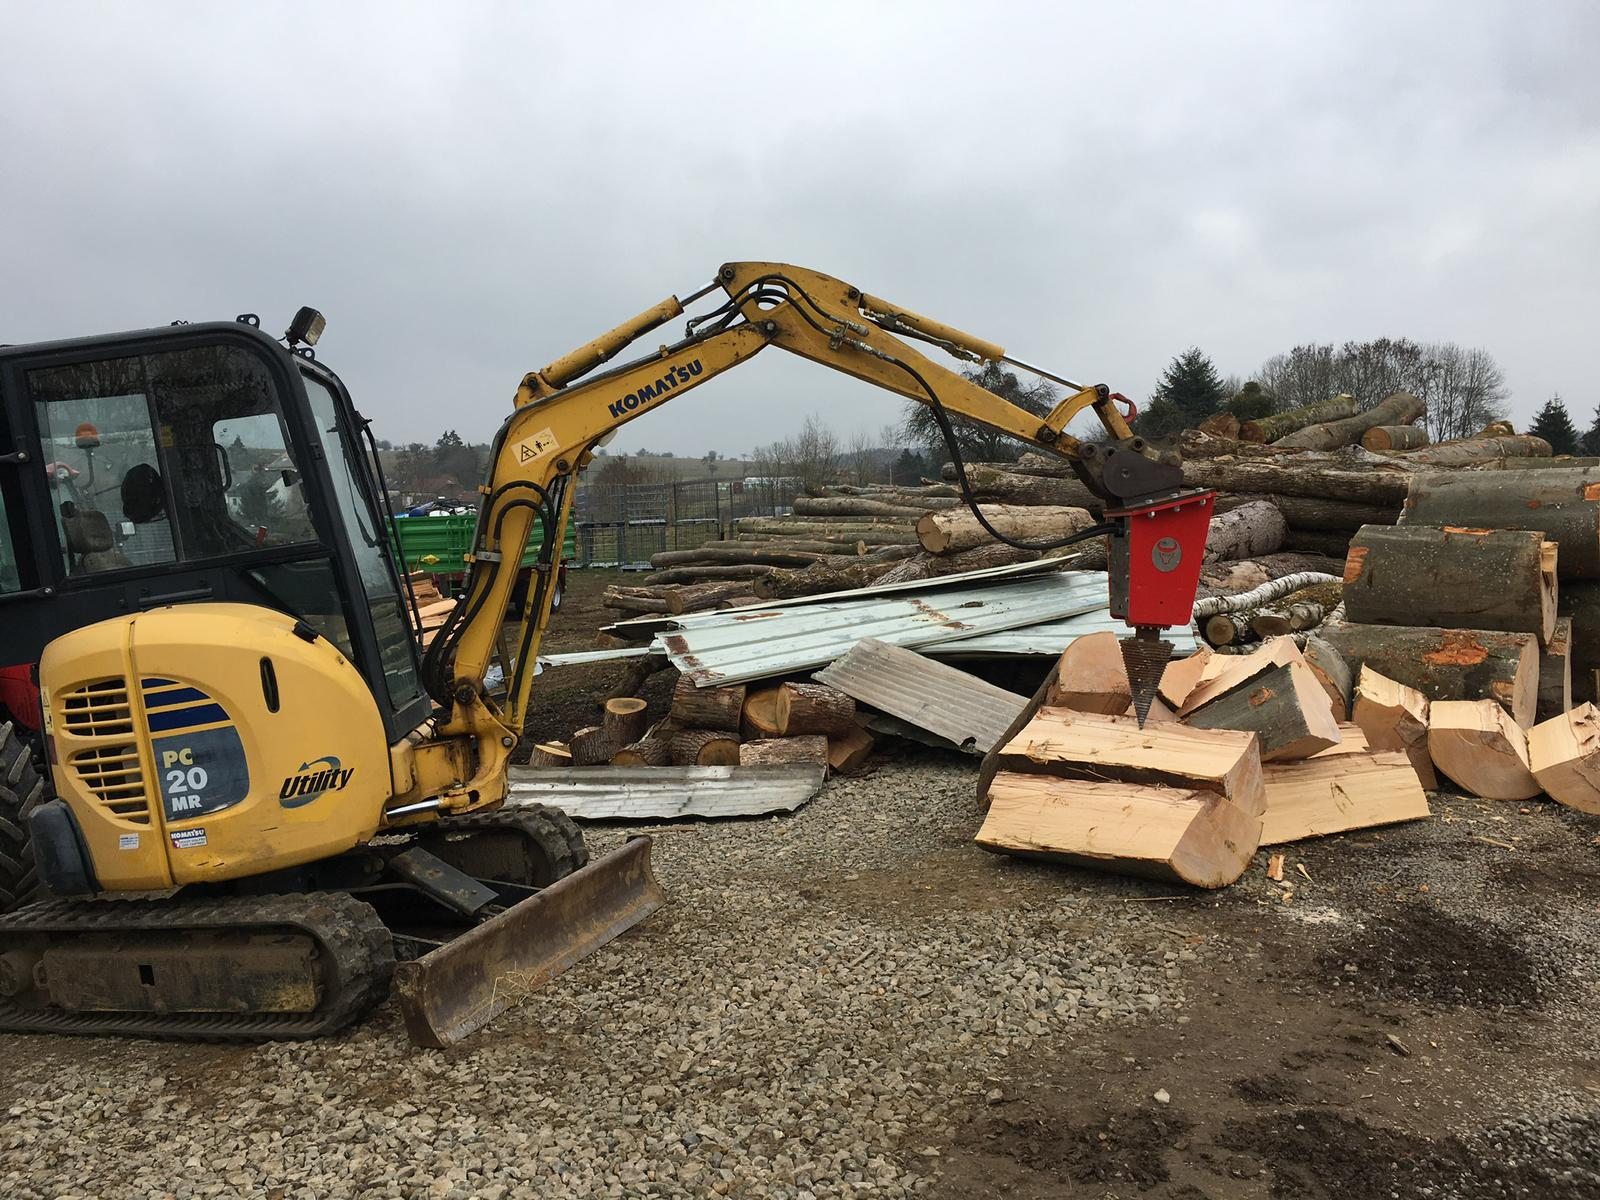 Production de bois